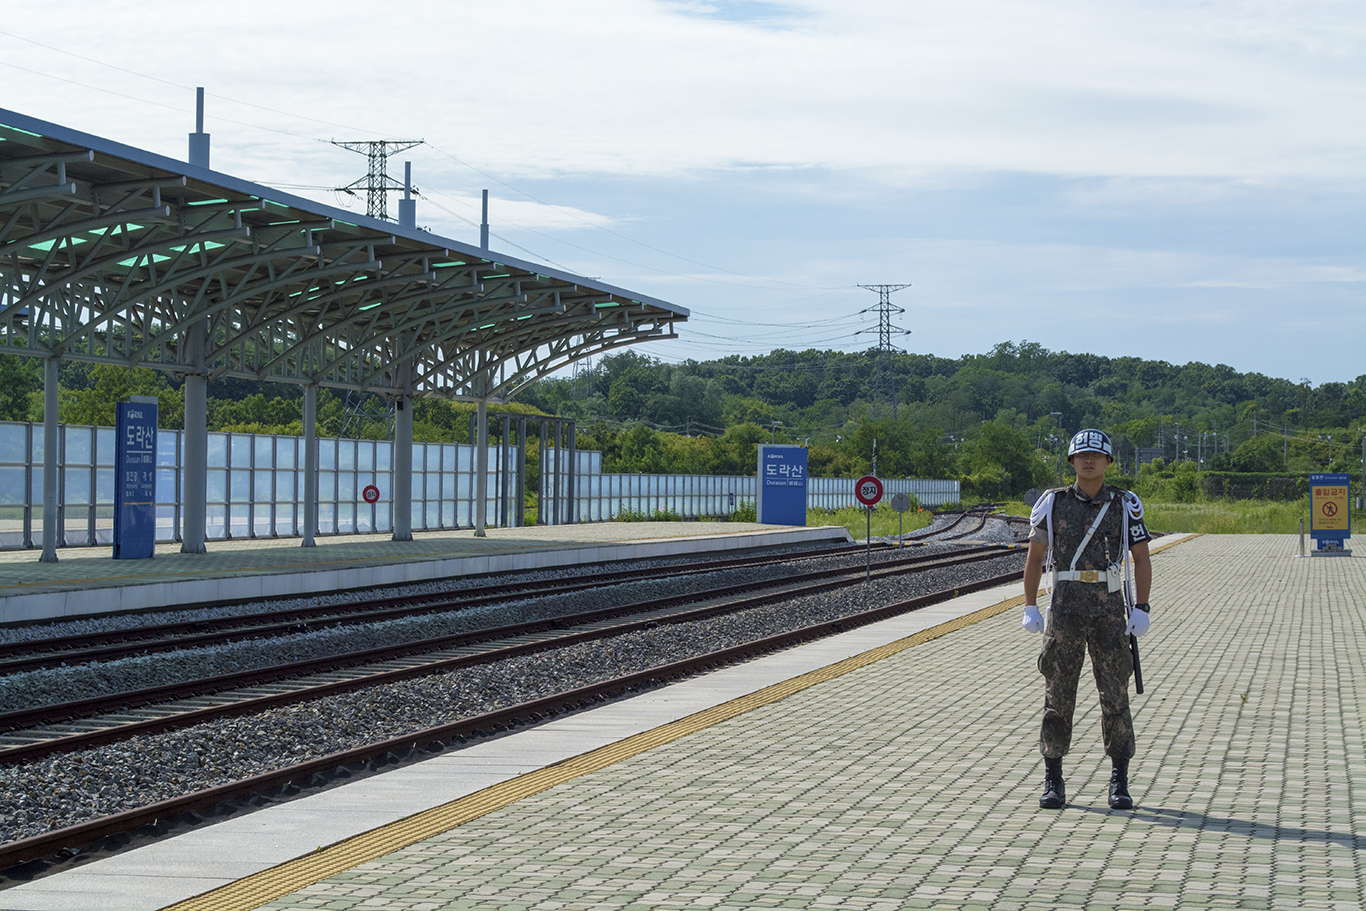 A South Korean soldier guards the northern side of the Dorasan station platform. The hangeul characters on his helmet identify him as military police. (CHRISTOPHER CAMERON/THE STATESMAN)